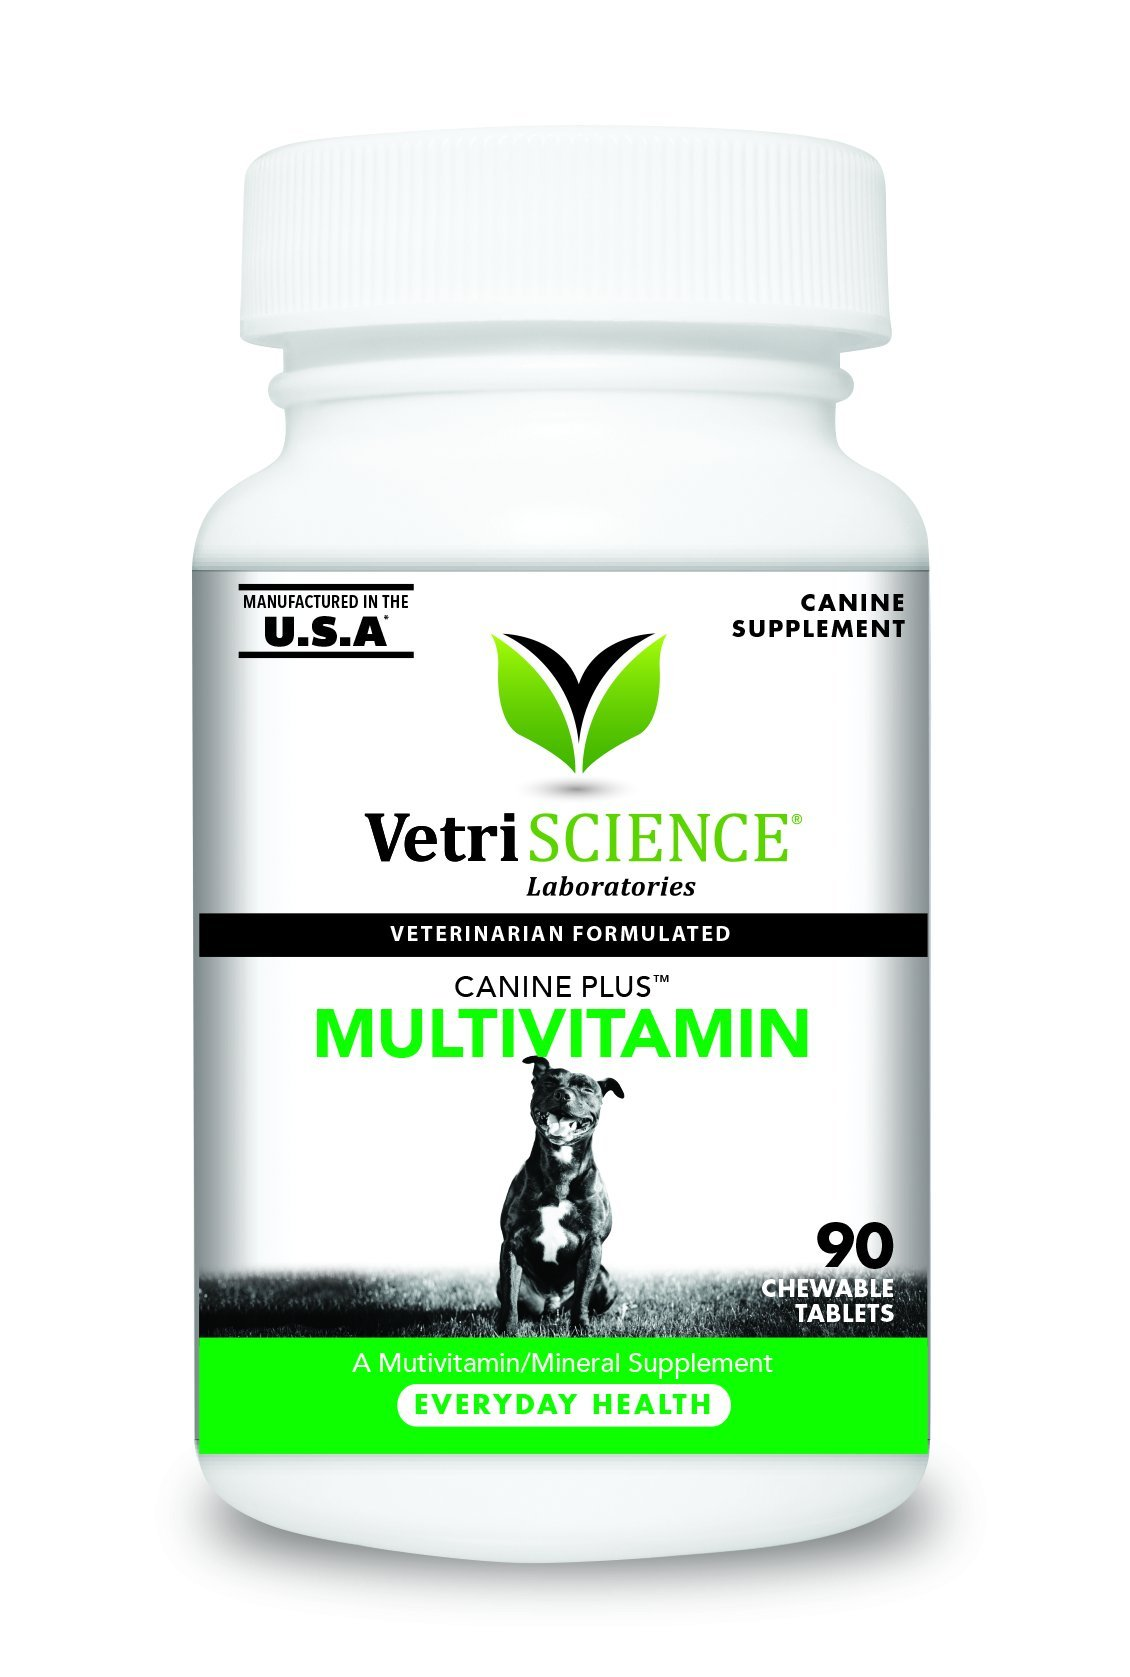 VetriScience Laboratories - Canine Plus MultiVitamin for Dogs, 90 Chewable Tablets